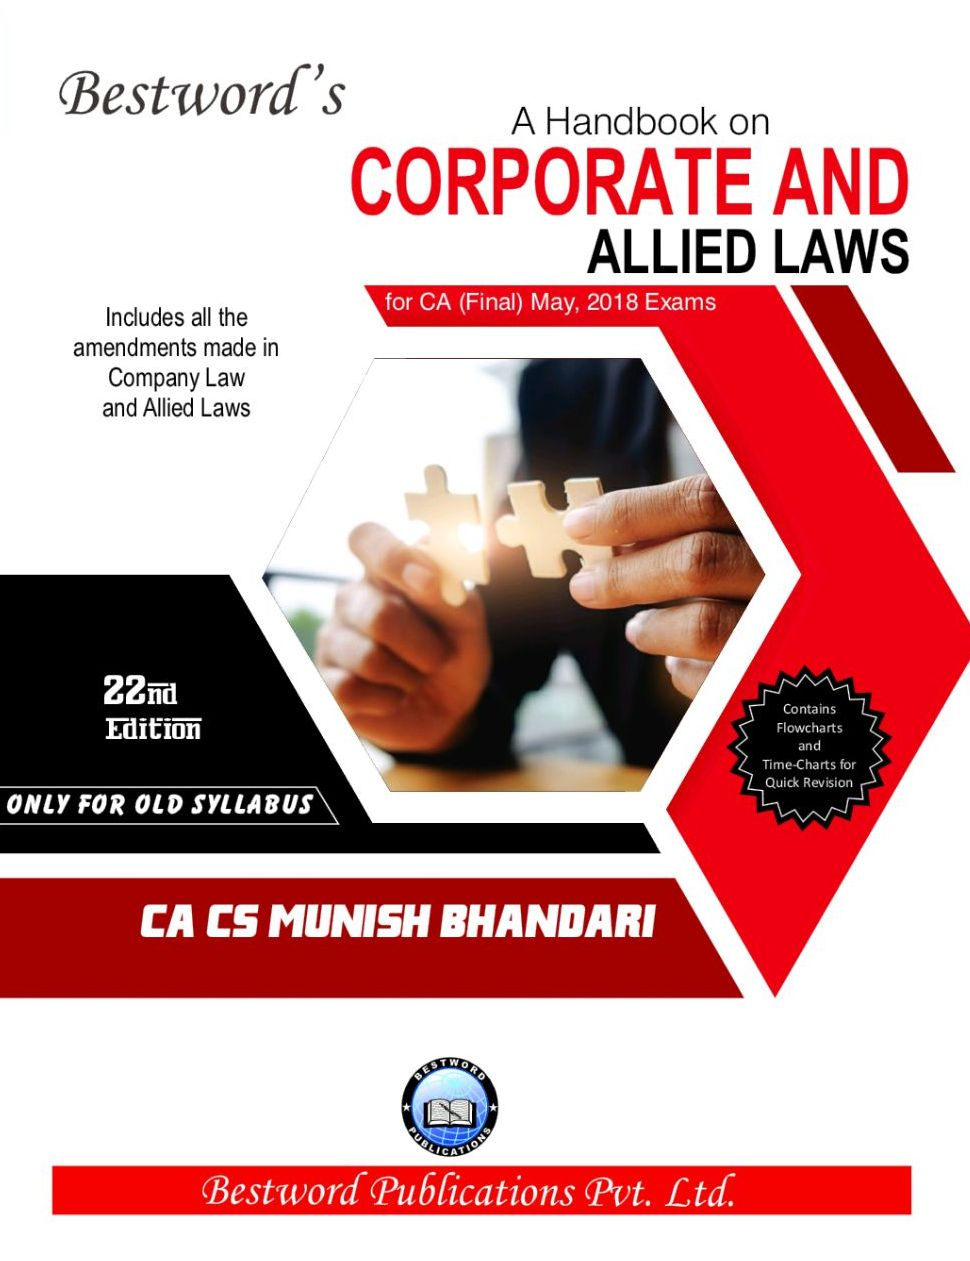 Bestword's A hand book on Corporate & Allied Laws for CA Final for May 2018 exam by CA Munish Bhandari (Bestword's Publishing) Edition 22nd, 2018